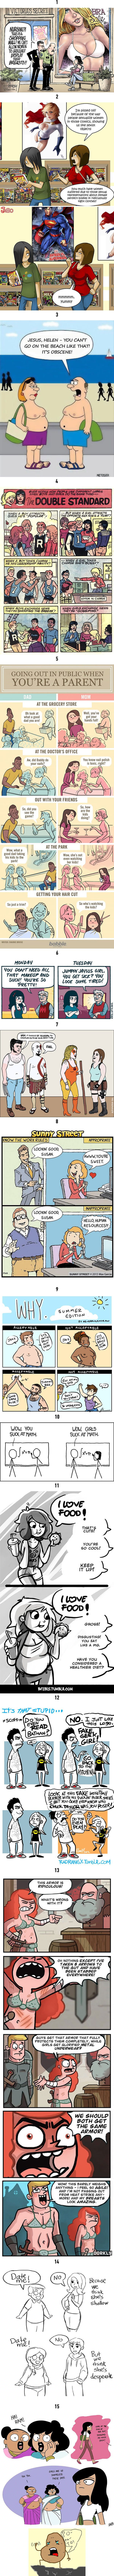 Double standards of our society revealed in these comics